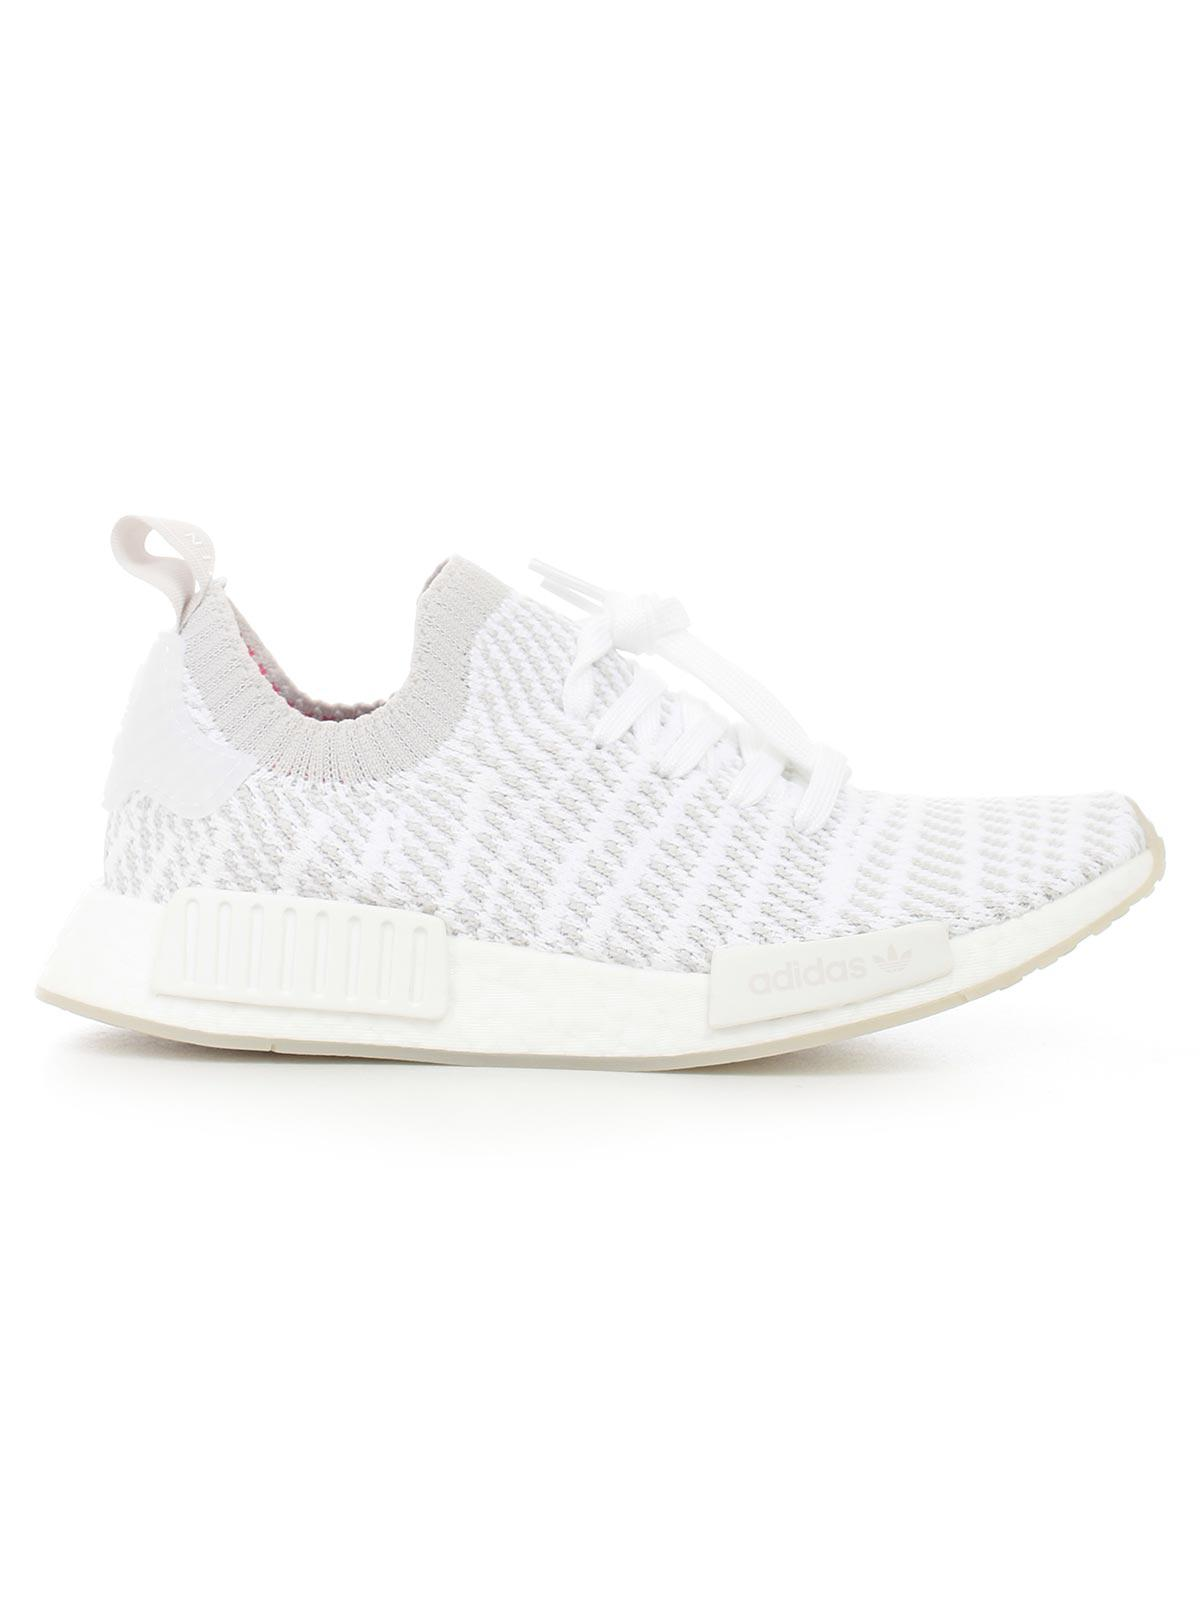 8f146709d1ea Lyst - Adidas Originals Sneakers Nmd R1 in White for Men